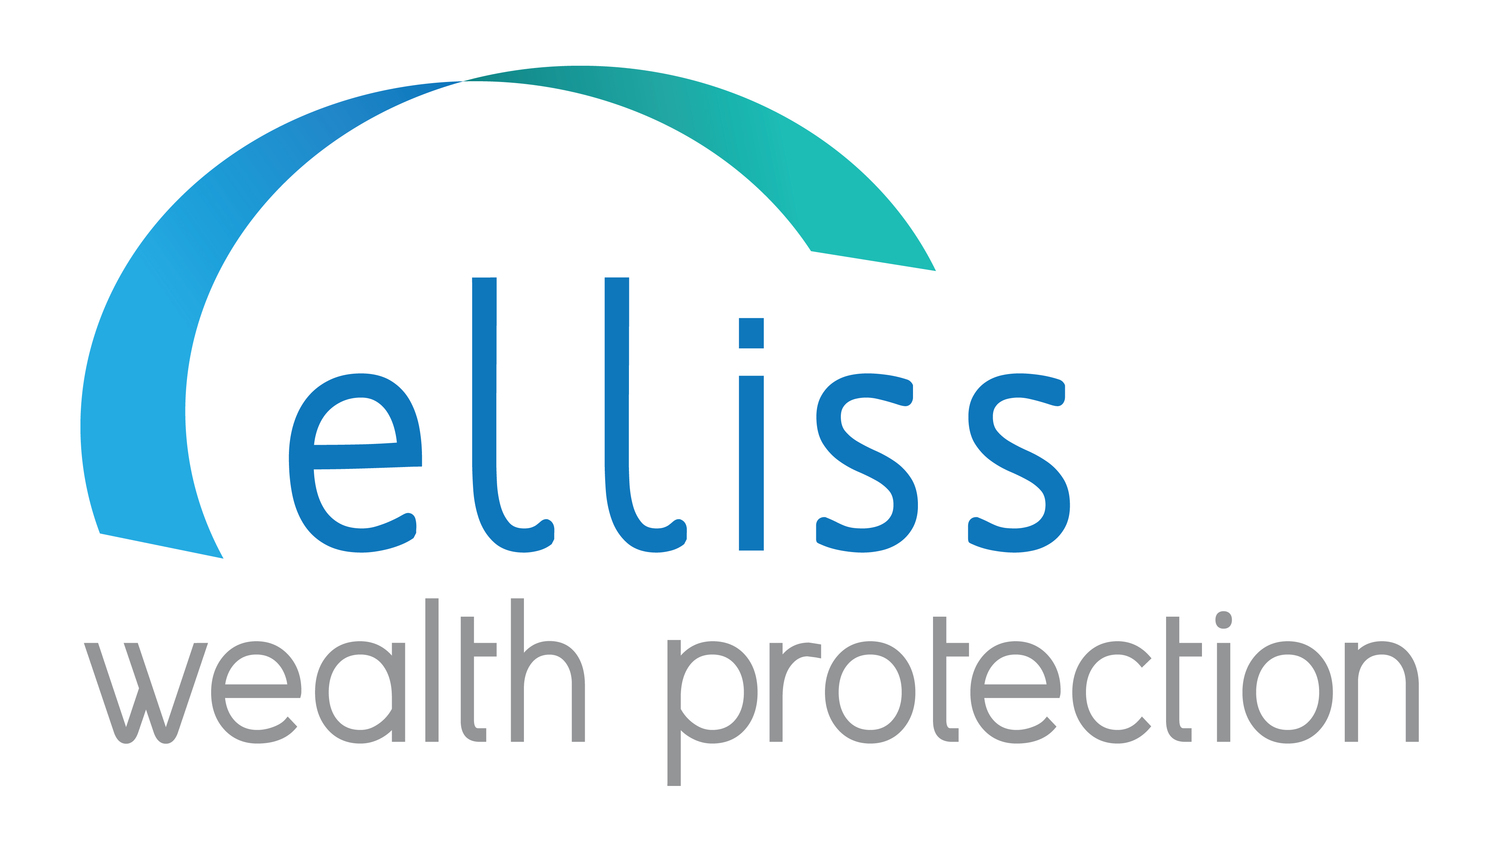 Elliss Wealth Protection